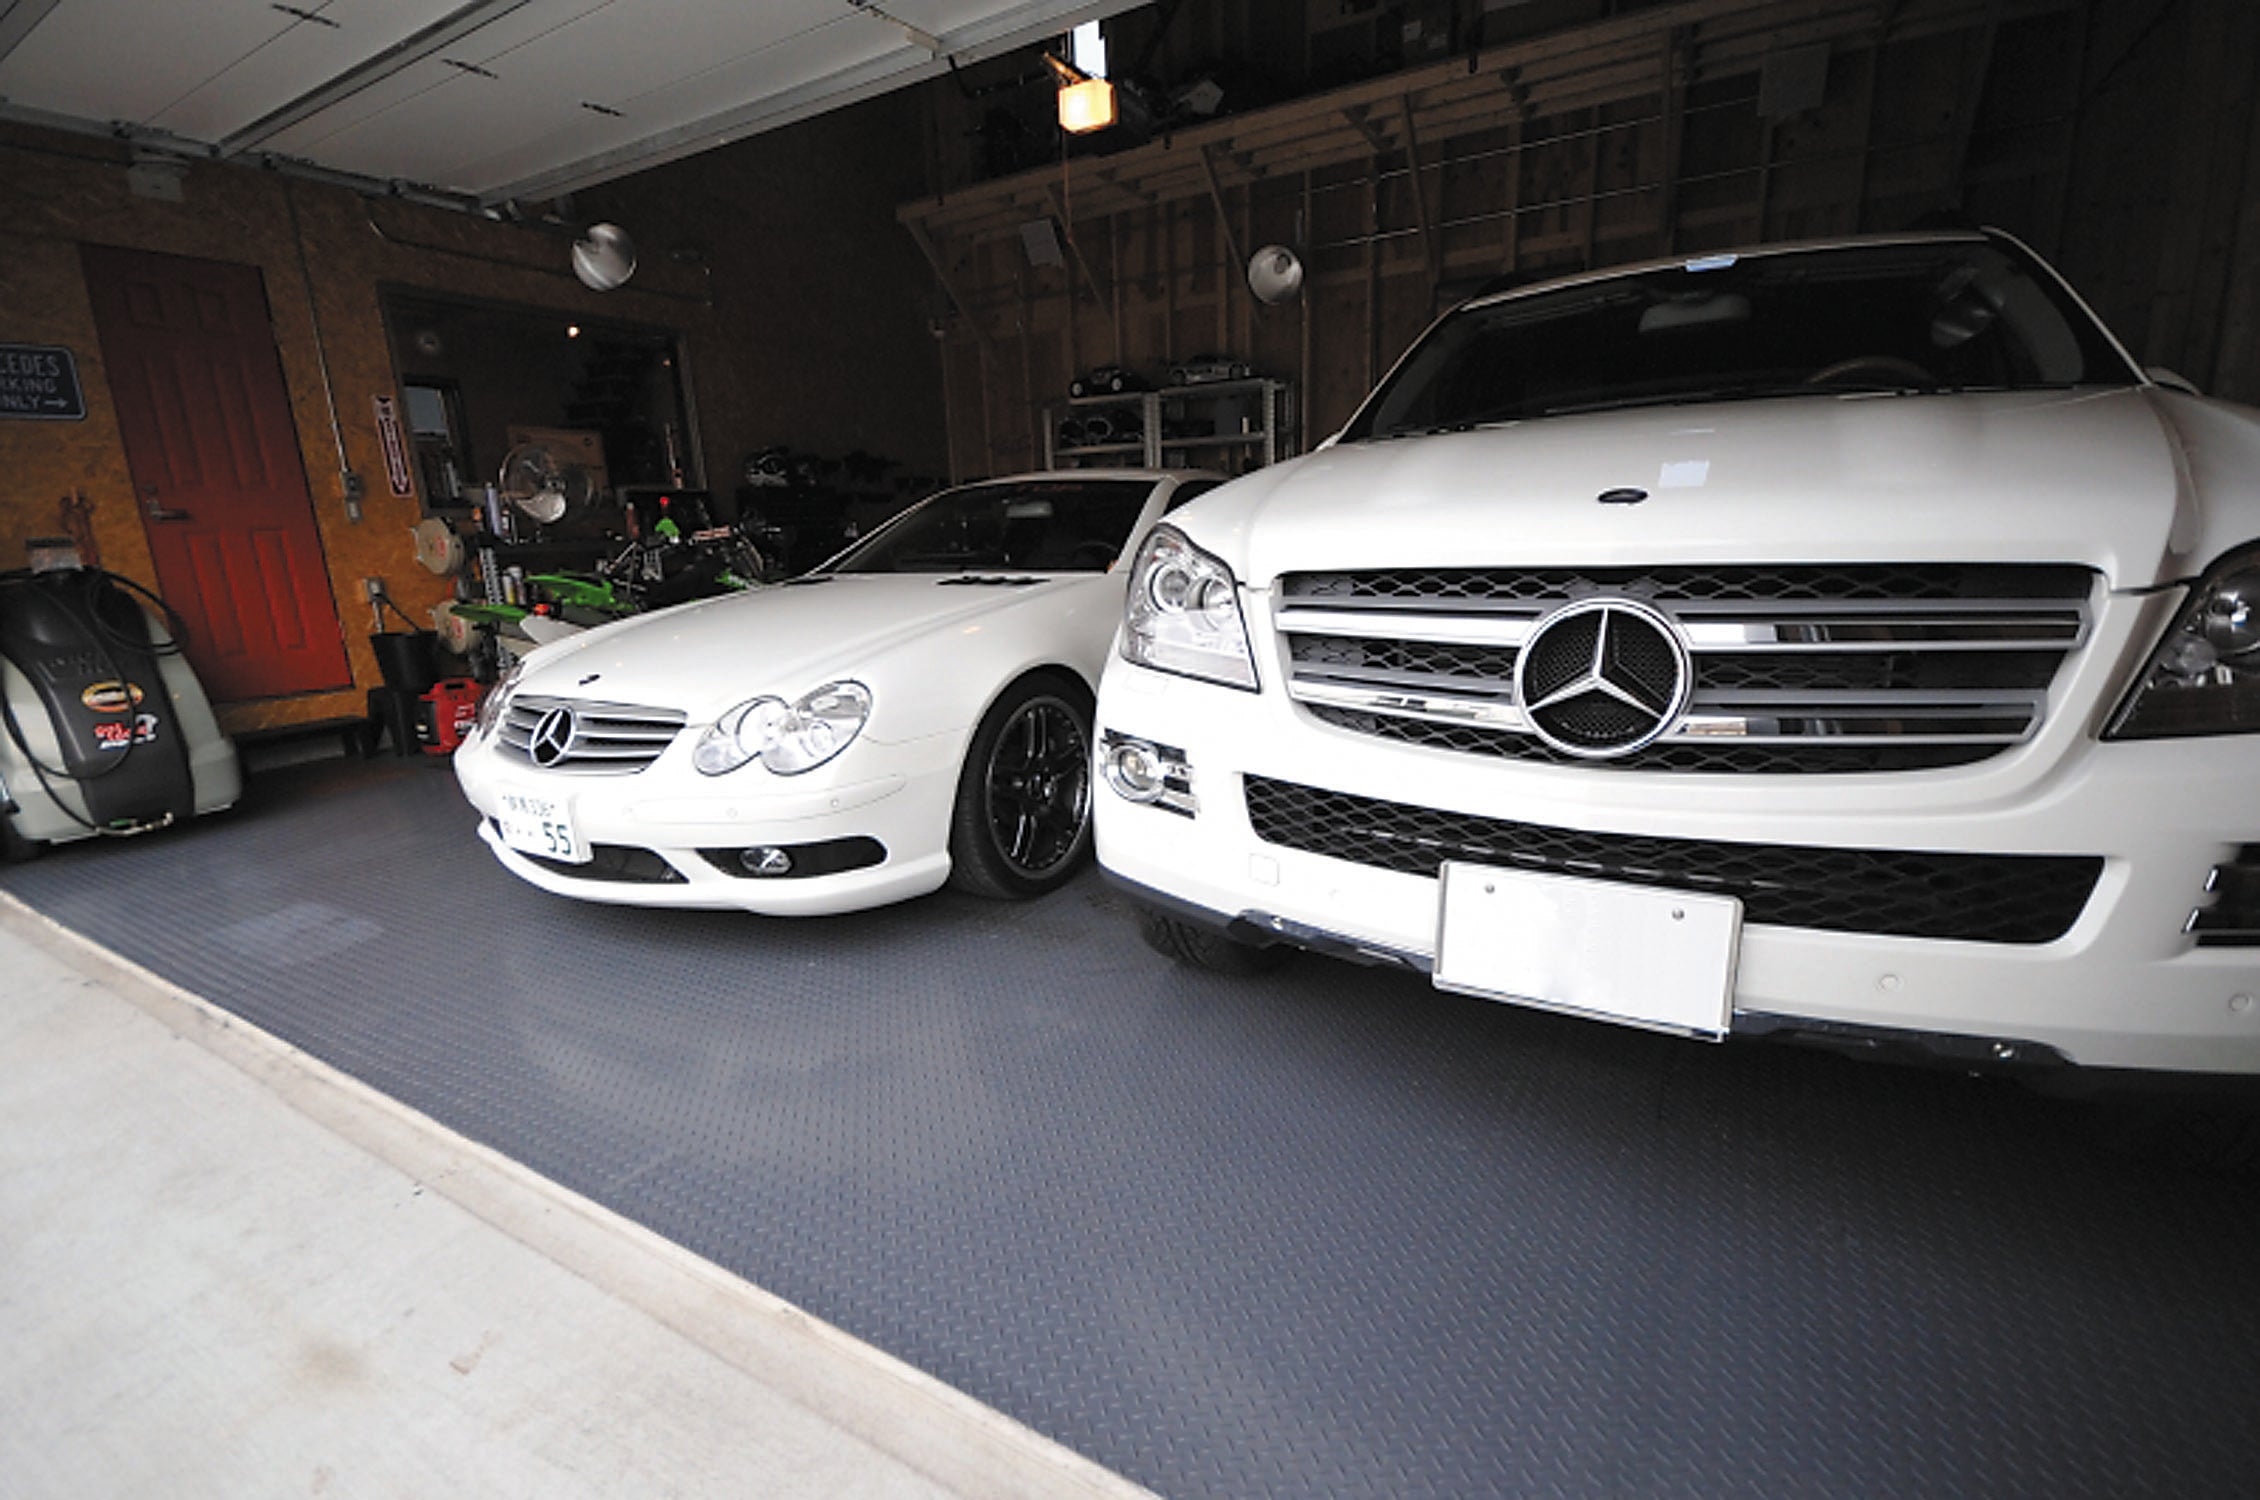 </p><br>Turn your Garage into an Impressive Showroom